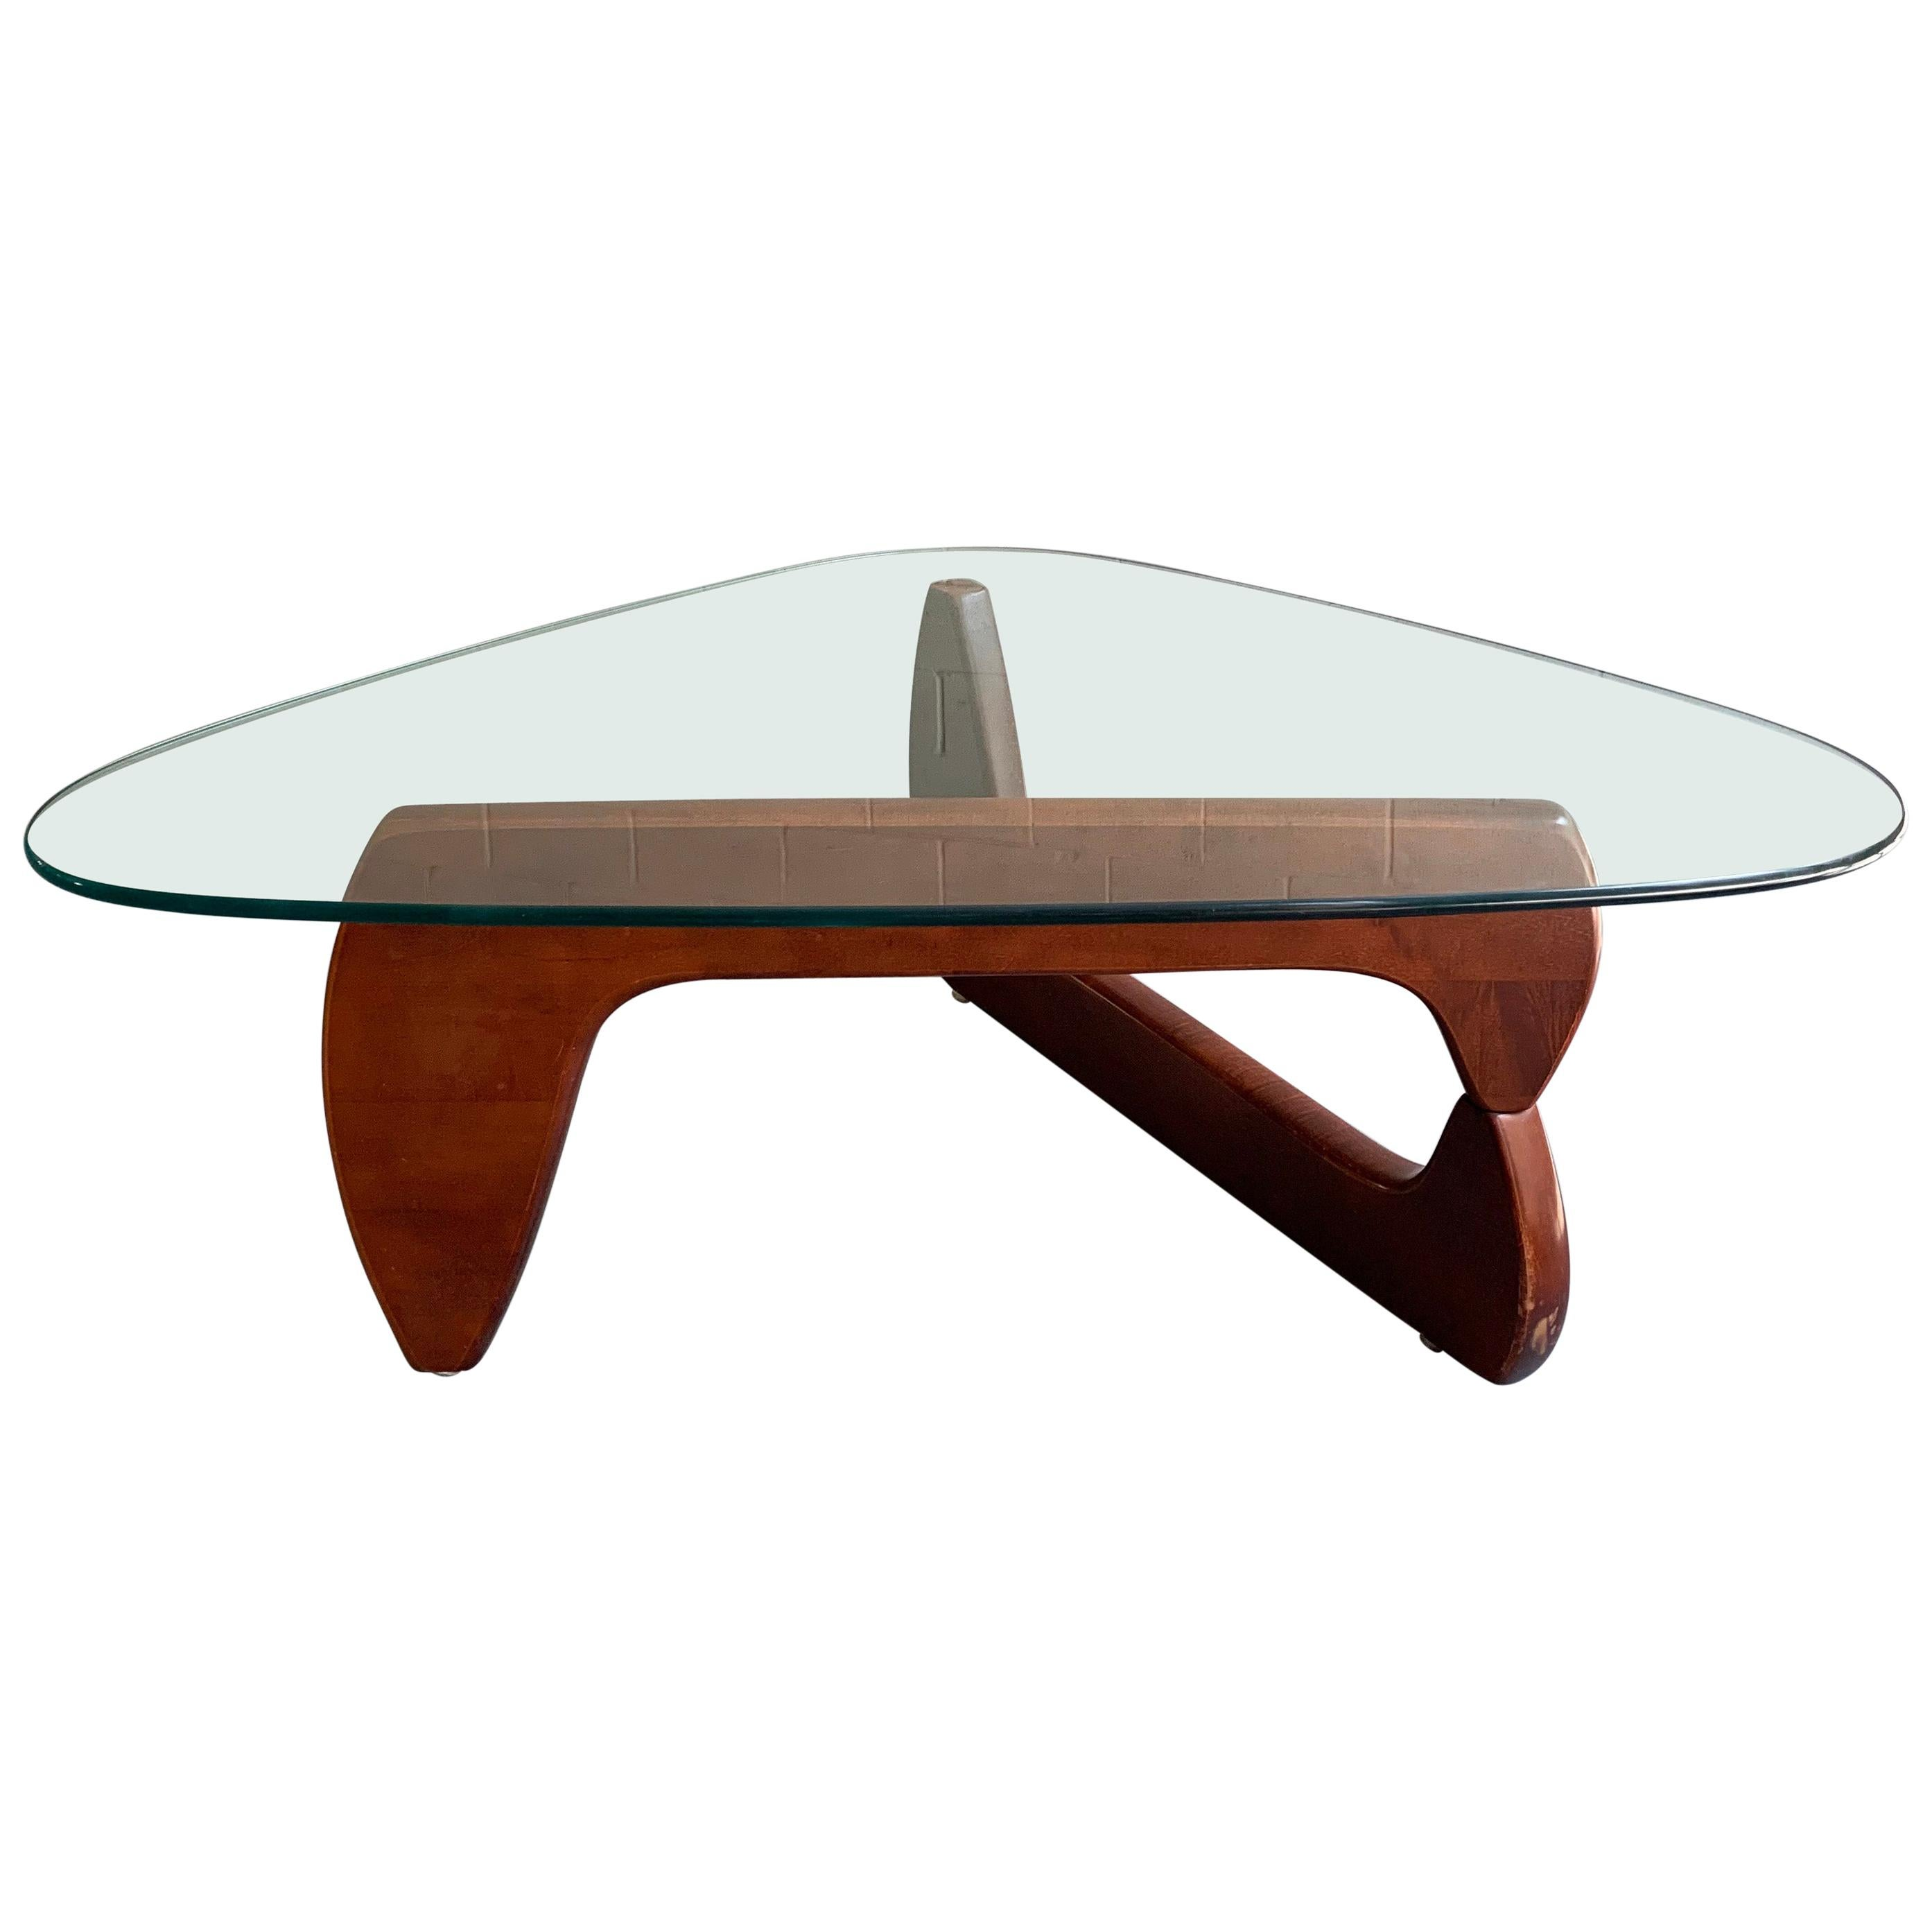 Biomorphic Coffee Table in the Style of Isamu Noguchi